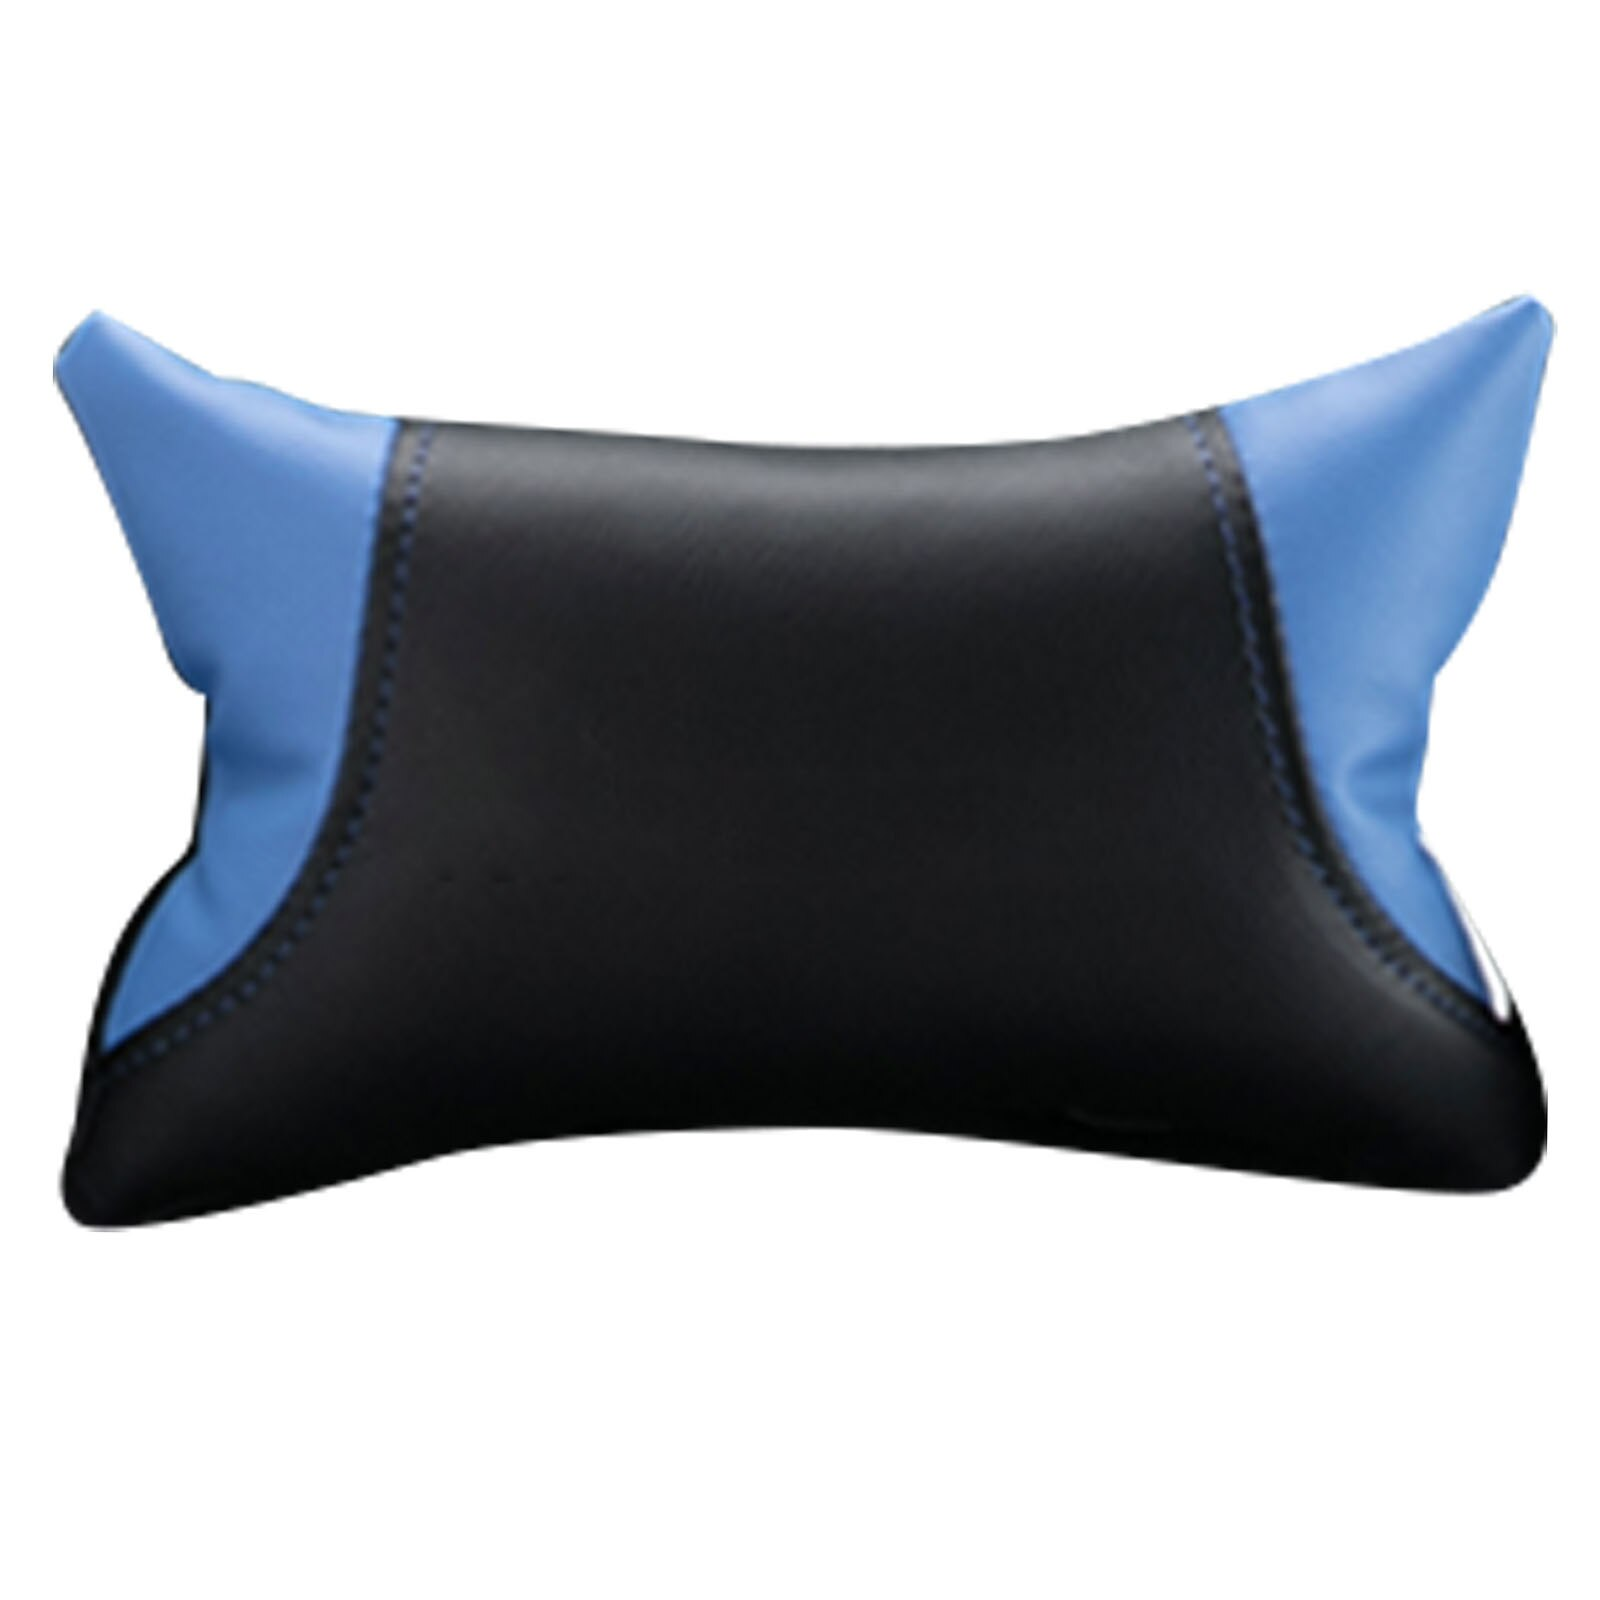 H1ee06bf65c5a4bbcb44580e589b21c471 - Gaming Chair Computer Armchair Adjustable Armrest And Footrest PVC Household Office Chair Ergonomic Computer Gamer Chair